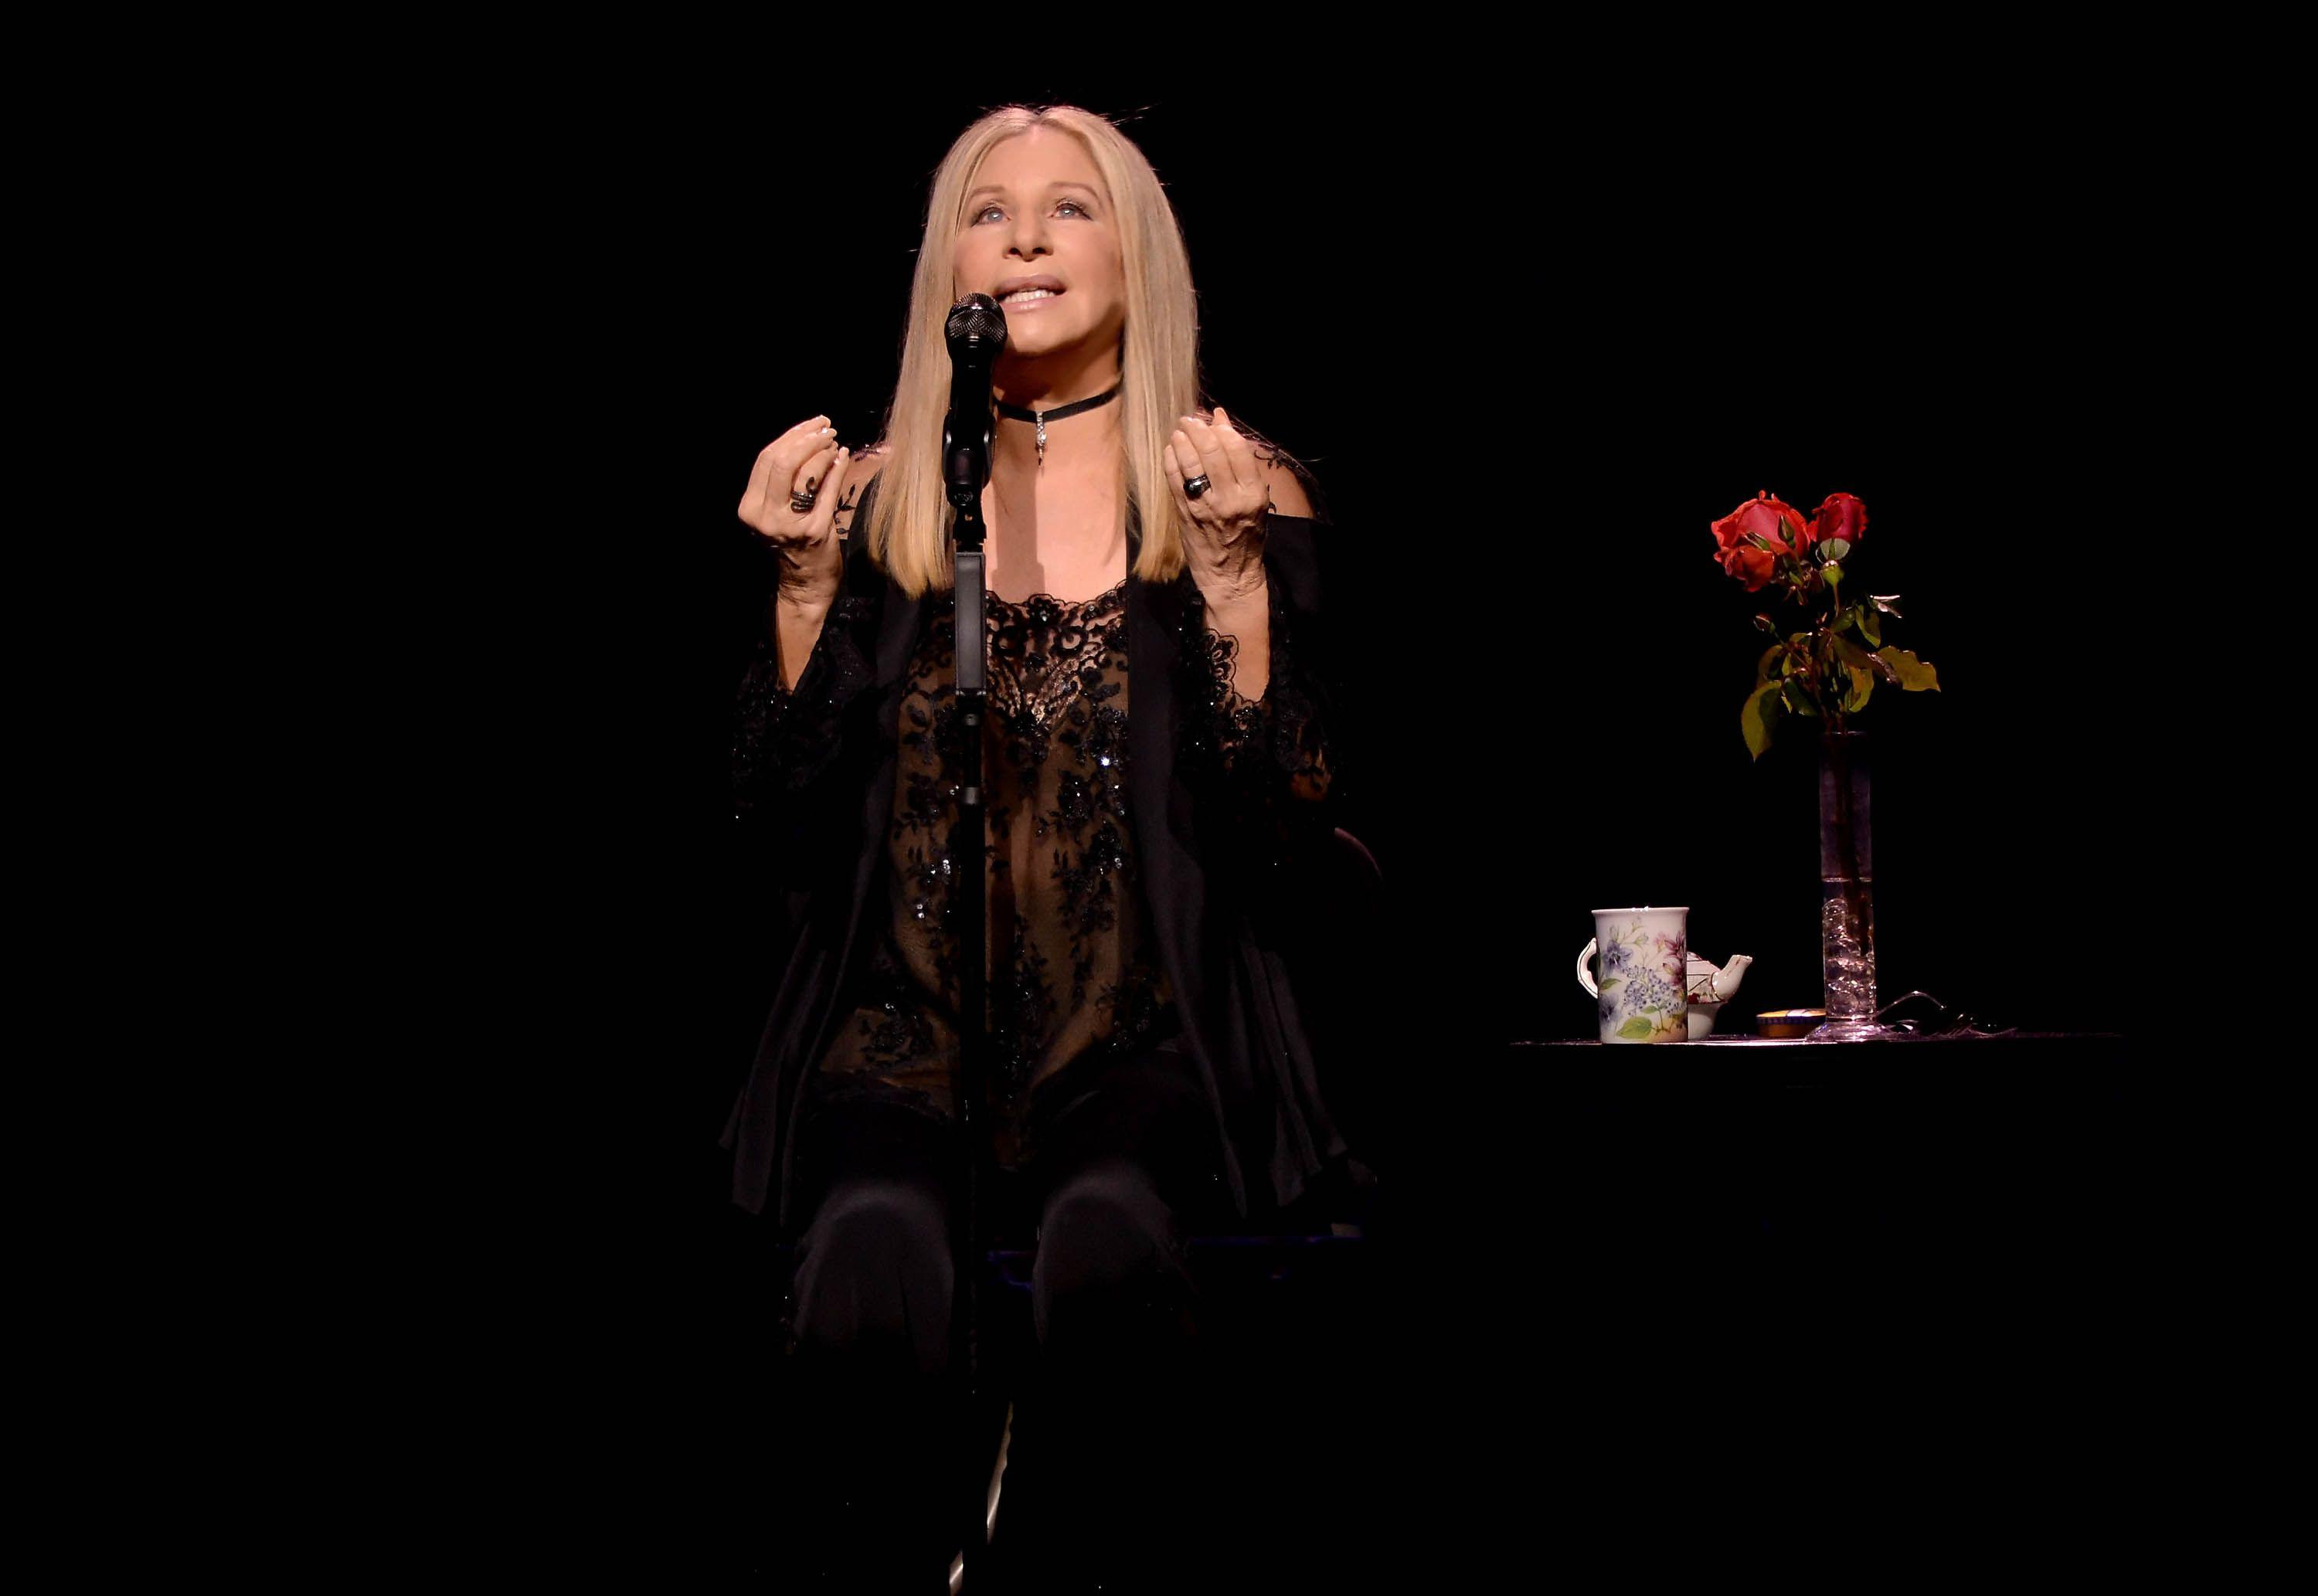 Barbra Streisand Returns to the New York Concert Stage